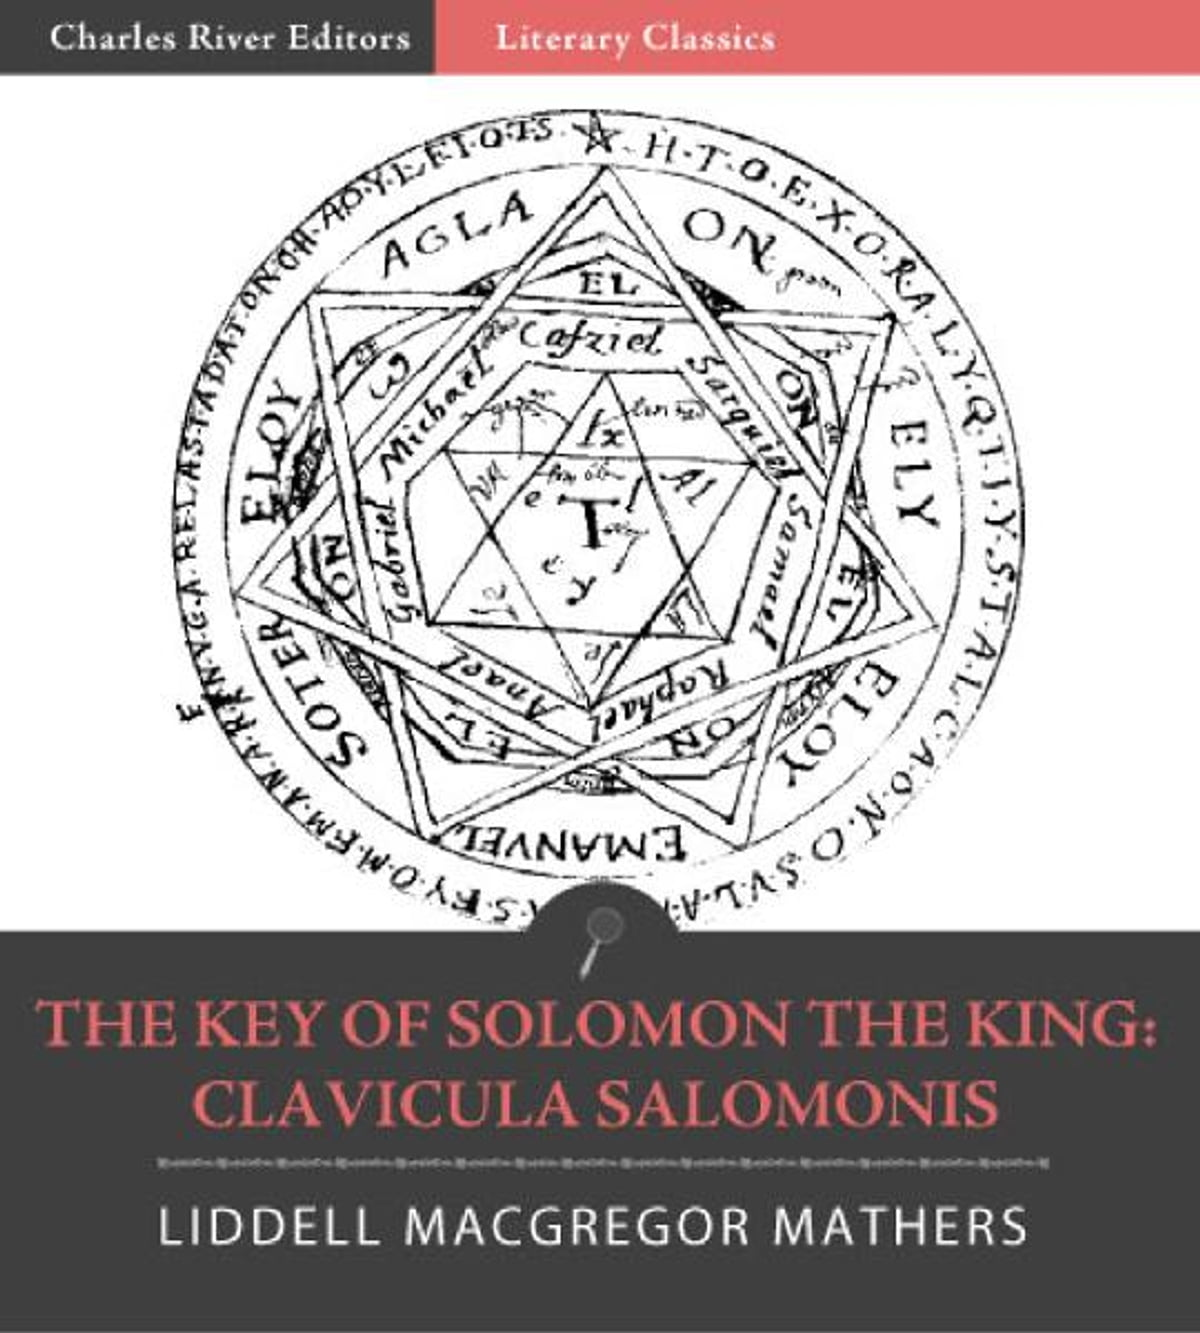 The Key of Solomon the King: Clavicula Salomonis (Illustrated Edition)  ebook by Samuel Liddell MacGregor Mathers - Rakuten Kobo